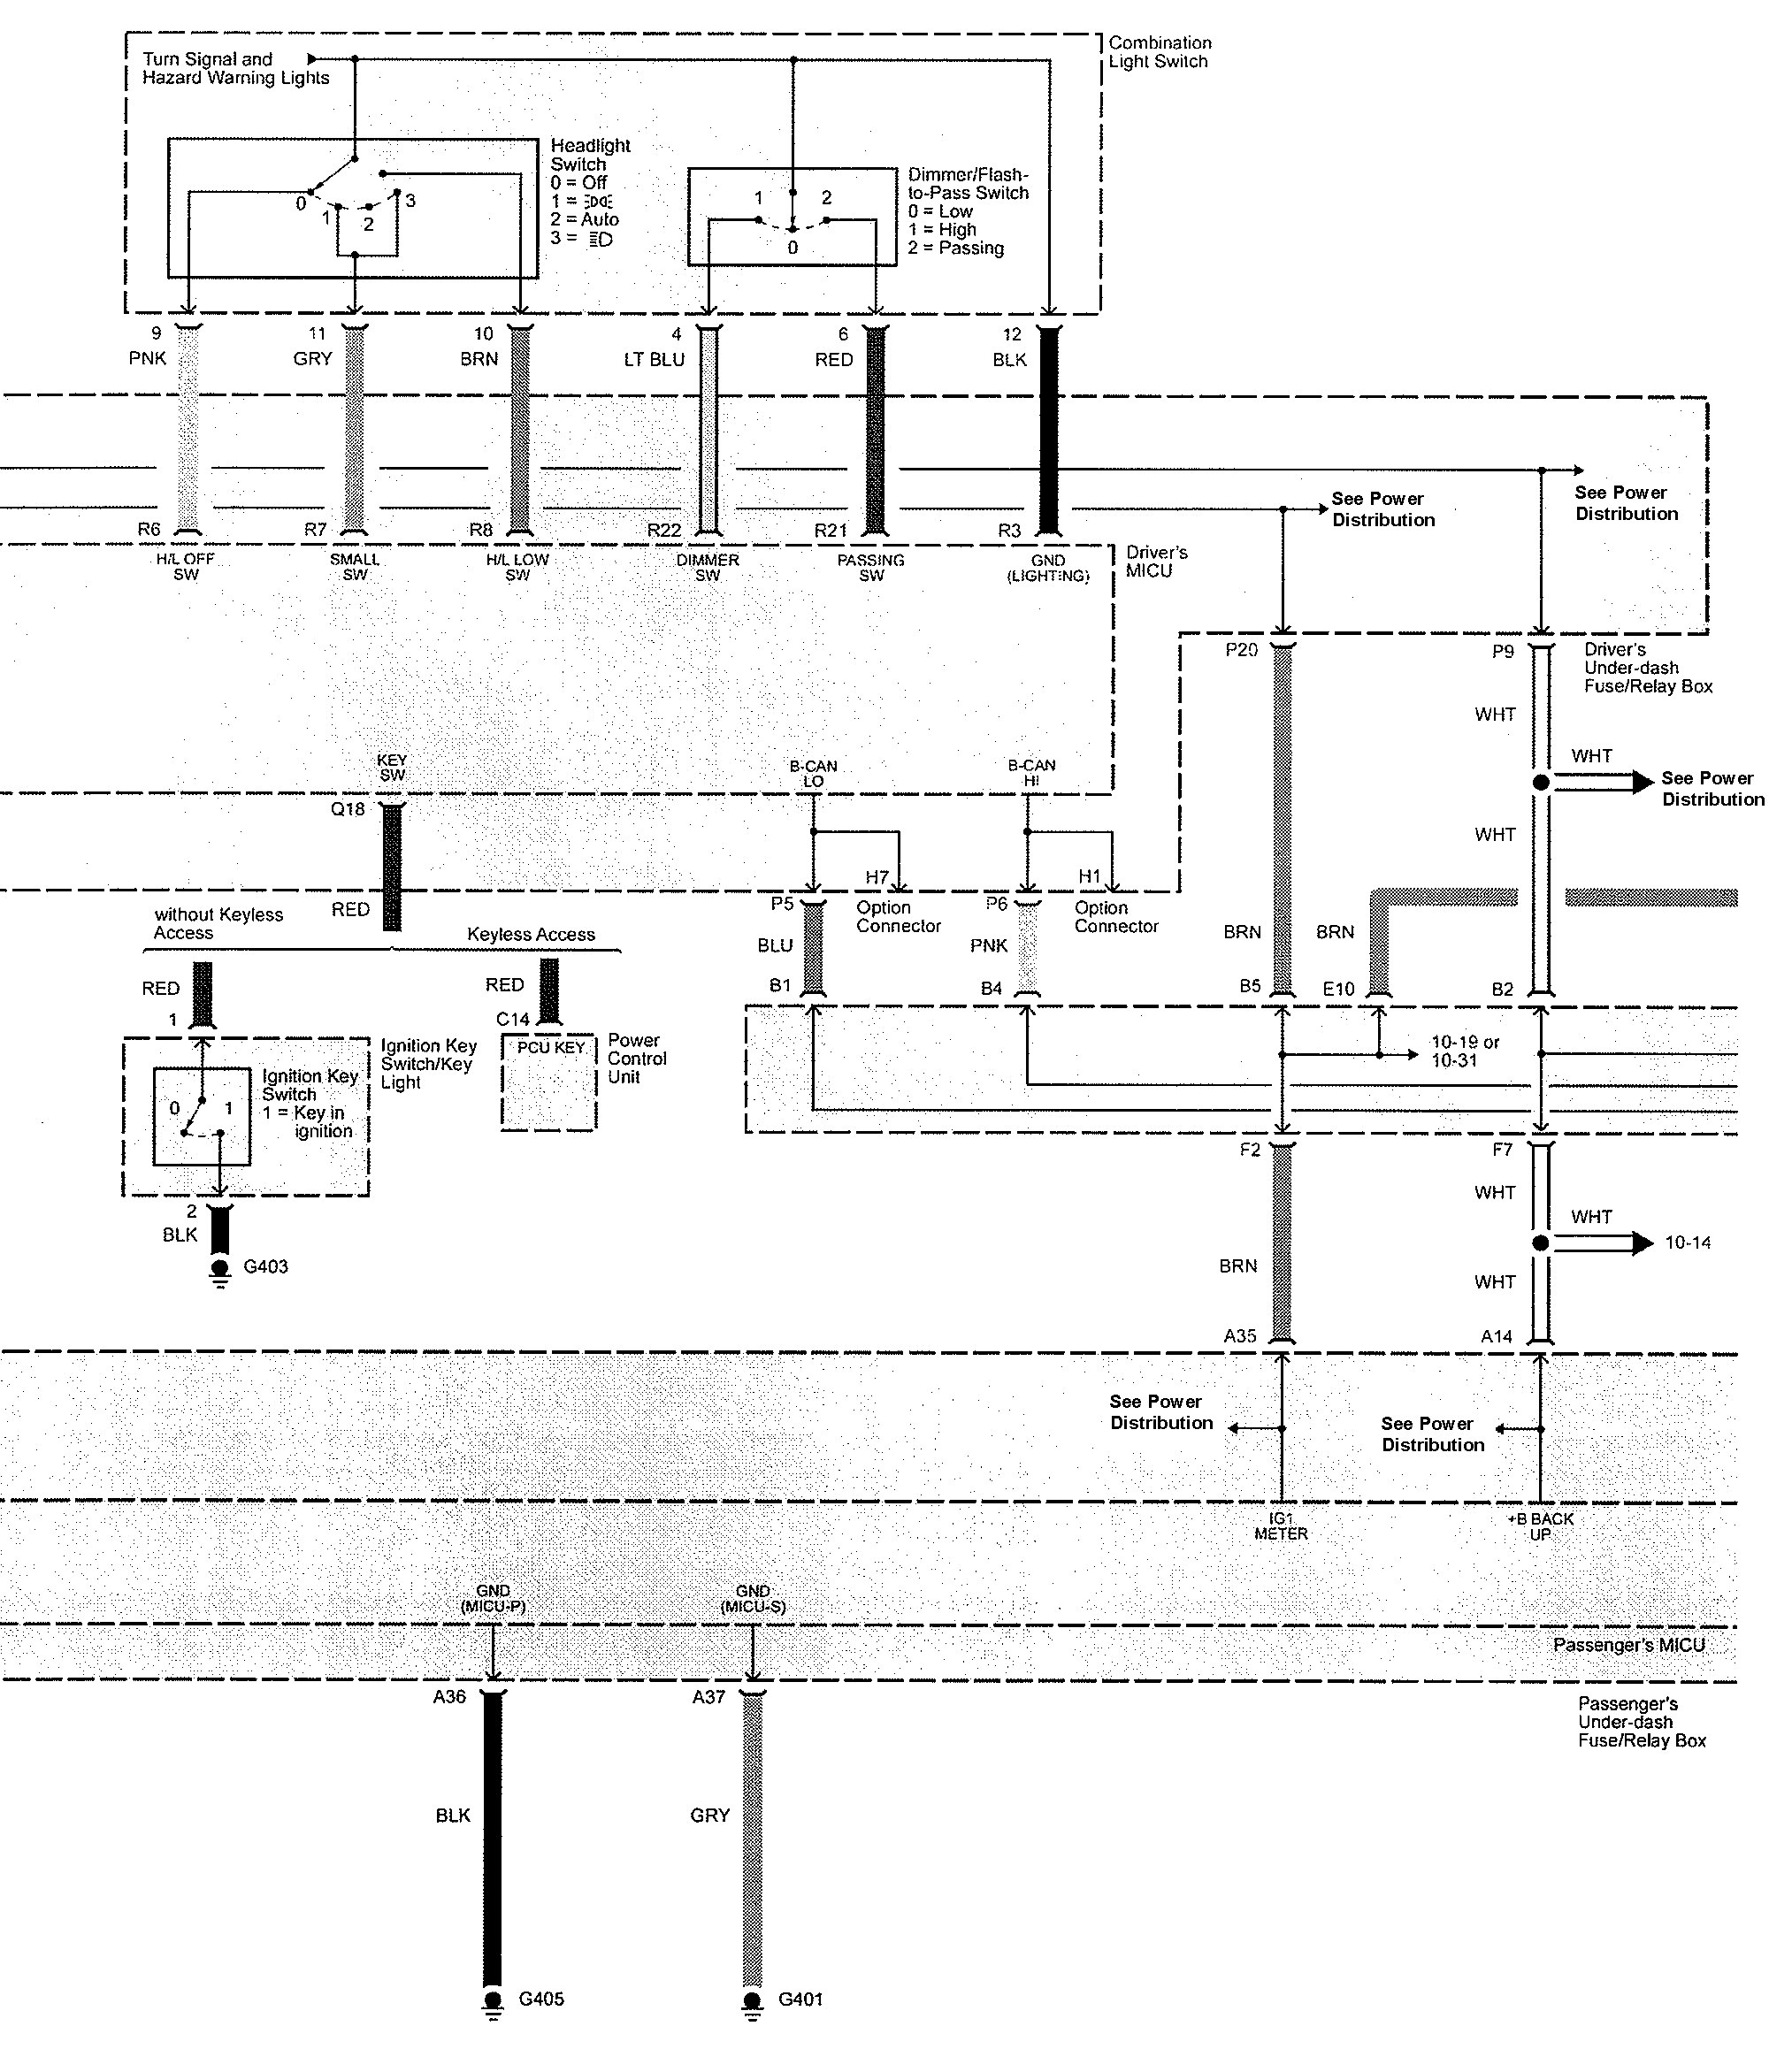 2009 Pt Cruiser Wire Schematic Great Design Of Wiring Diagram Engine Exterior Lighting 2007 48 2001 Chrysler